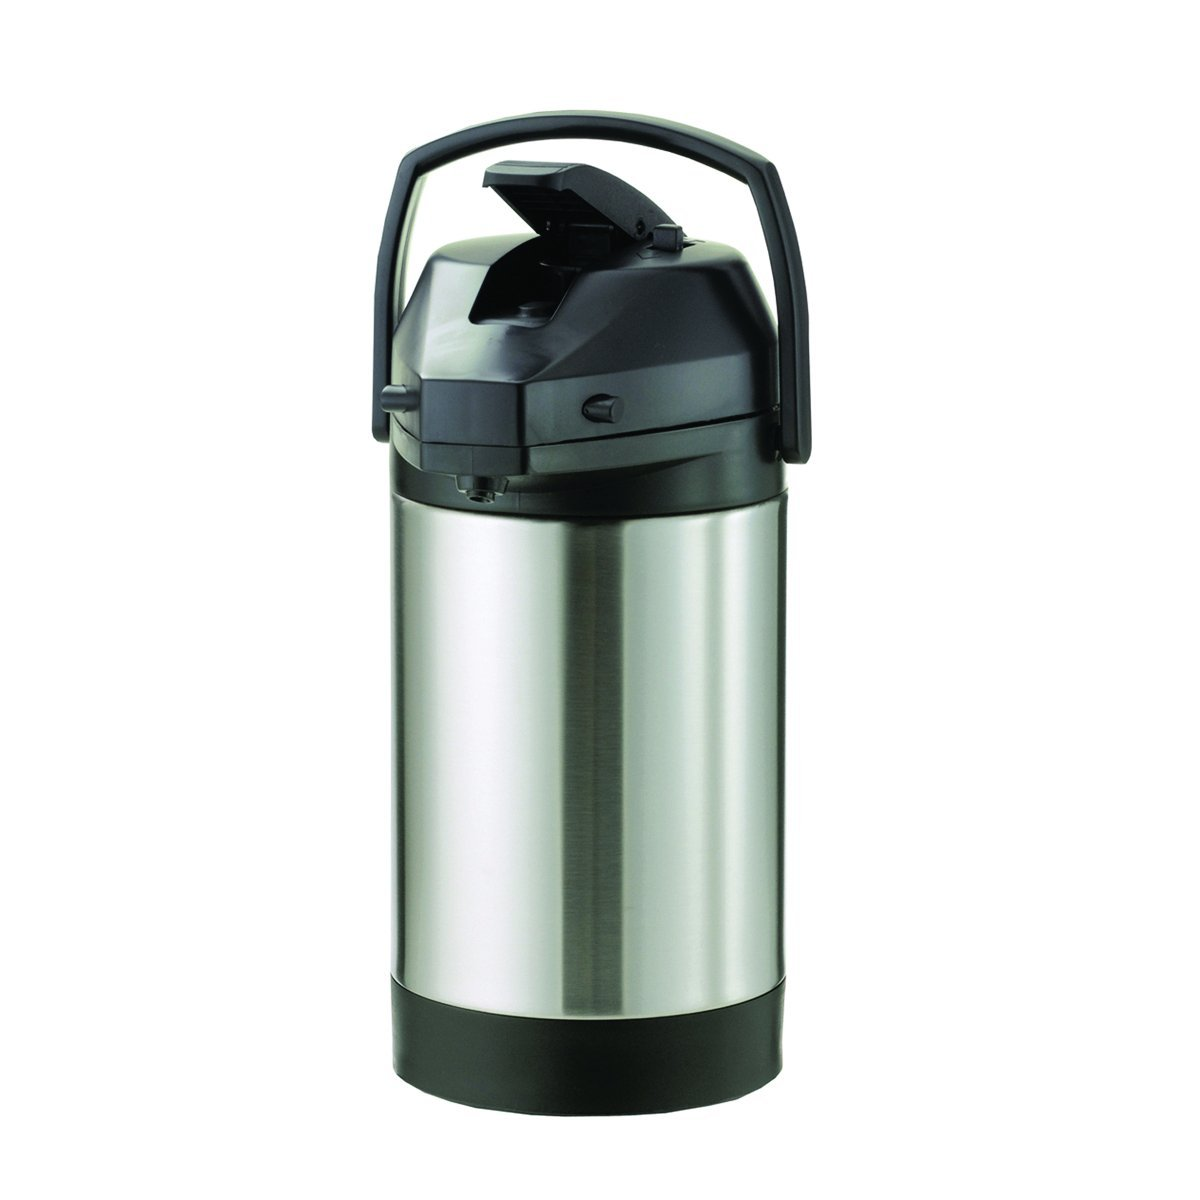 Service Ideas SVAP38CPL Economy Airpot with Lever, Stainless Steel Lined, NSF Listed, 3.8 L